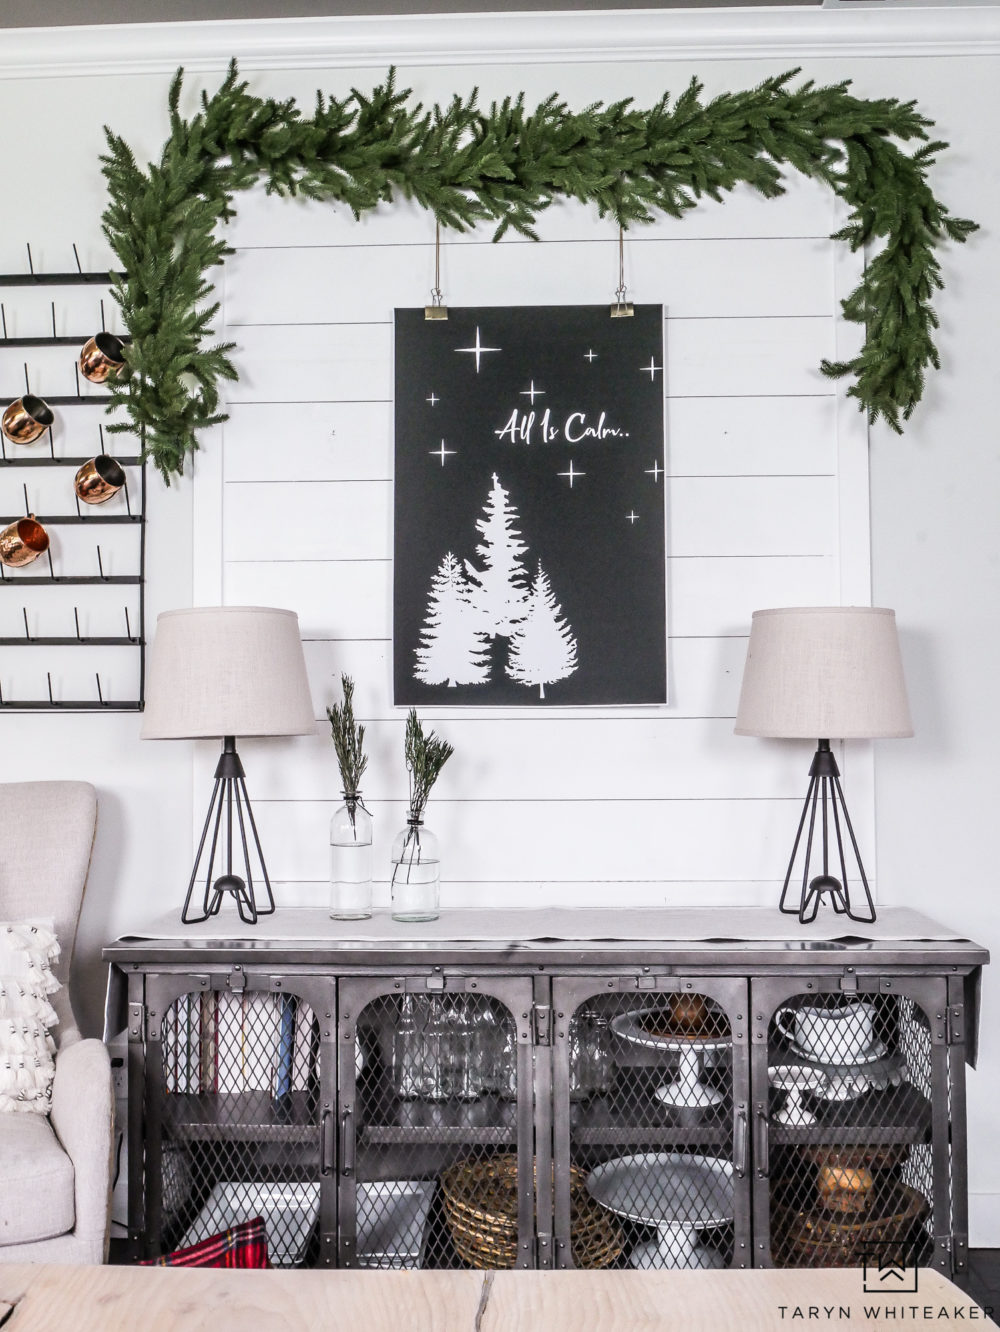 Recreate this rust modern Christmas vignette by downloading your own copy of this free Christmas printable and putting it in your own home!